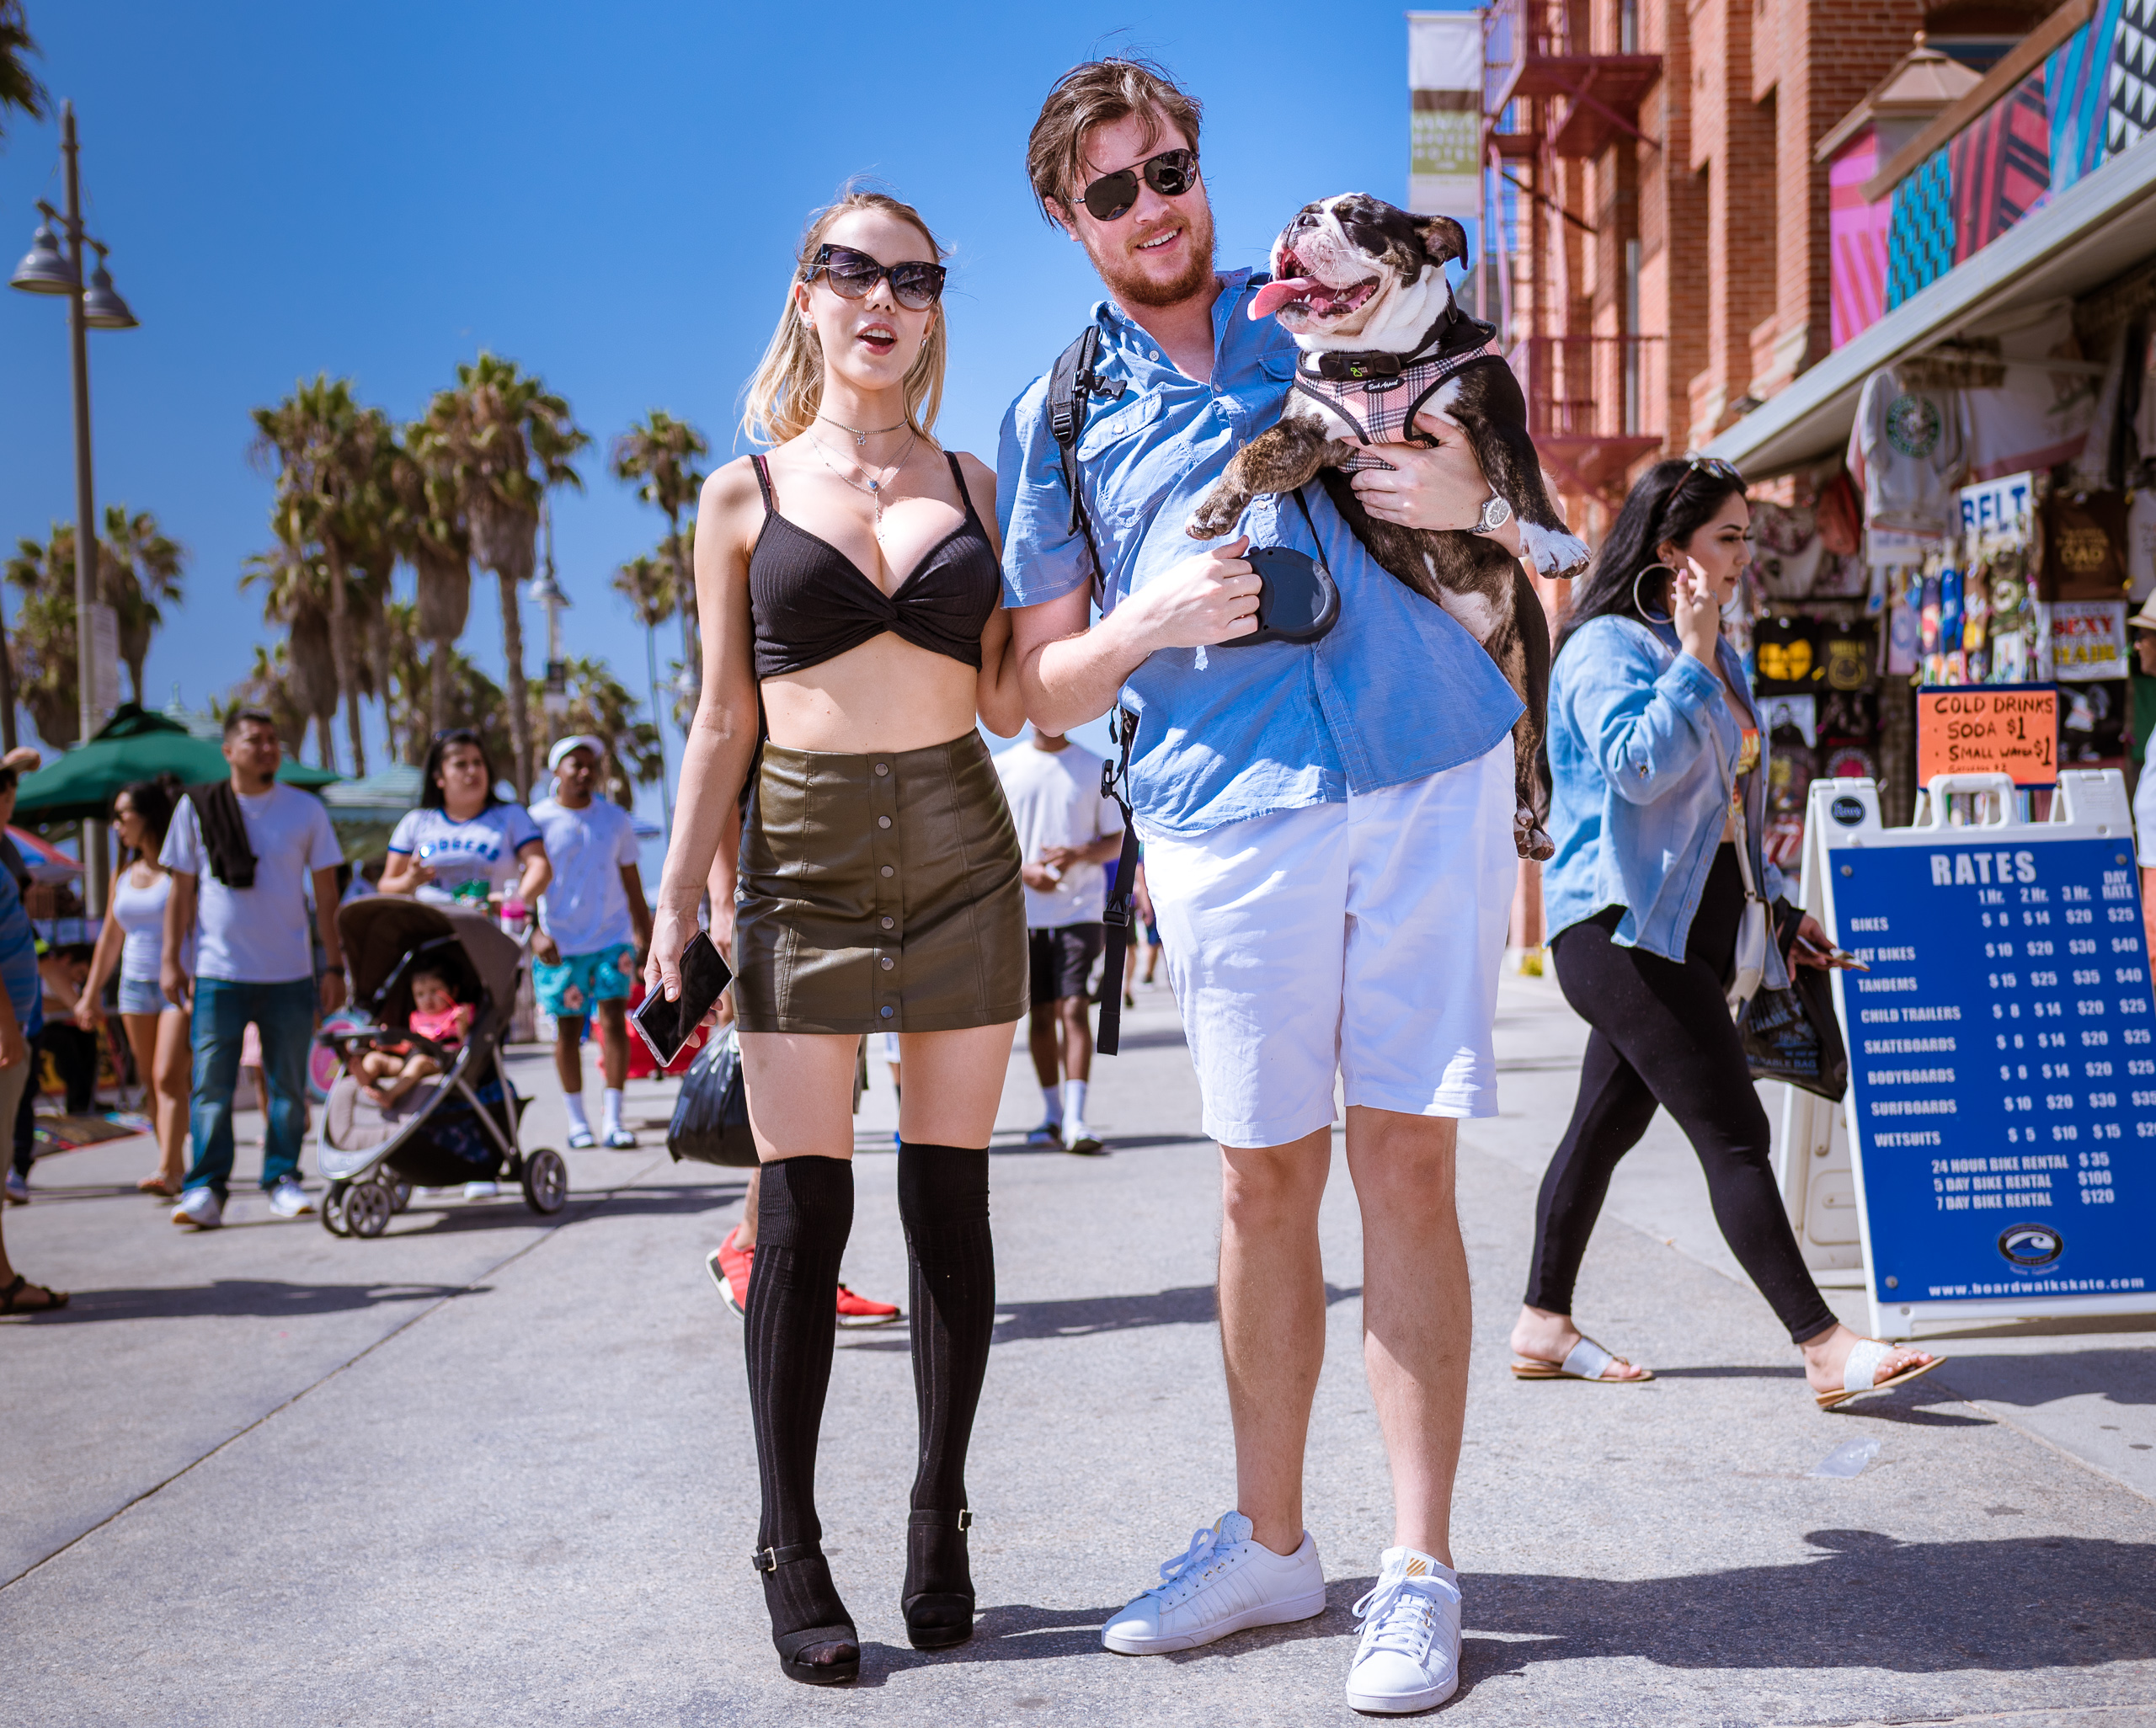 Gabby, Edward & Kona posing on the Venice Boardwalk in Venice Beach, California